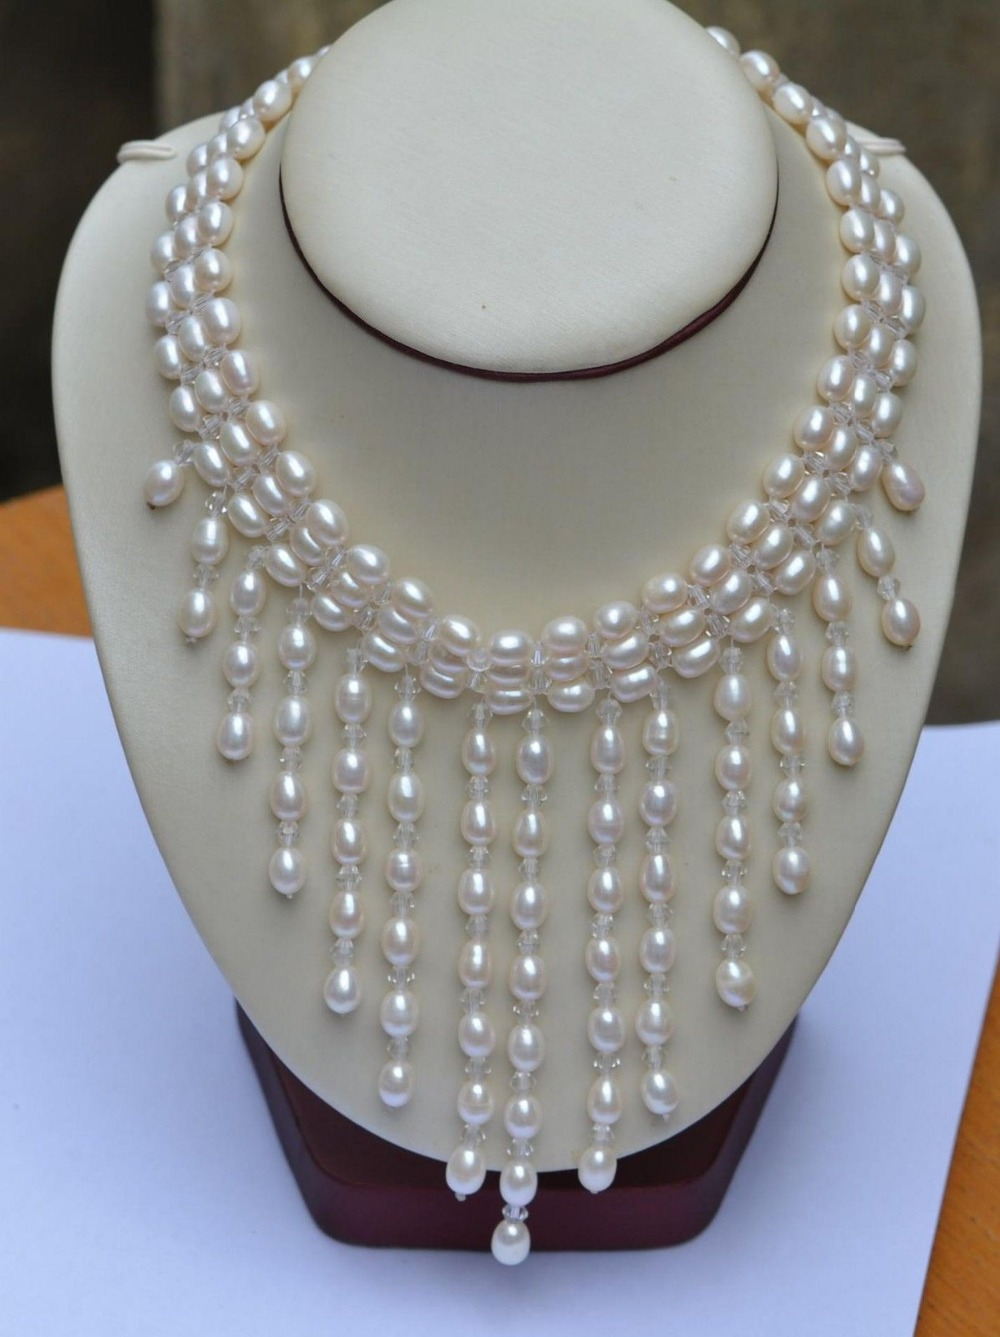 wholesale good Natural 7-8mm AAA pearl necklace jewelry Natural white freshwater pearl collares anime 925 silver wholesale good natural 7 8mm aaa pearl necklace jewelry natural white freshwater pearl collares anime 925 silver